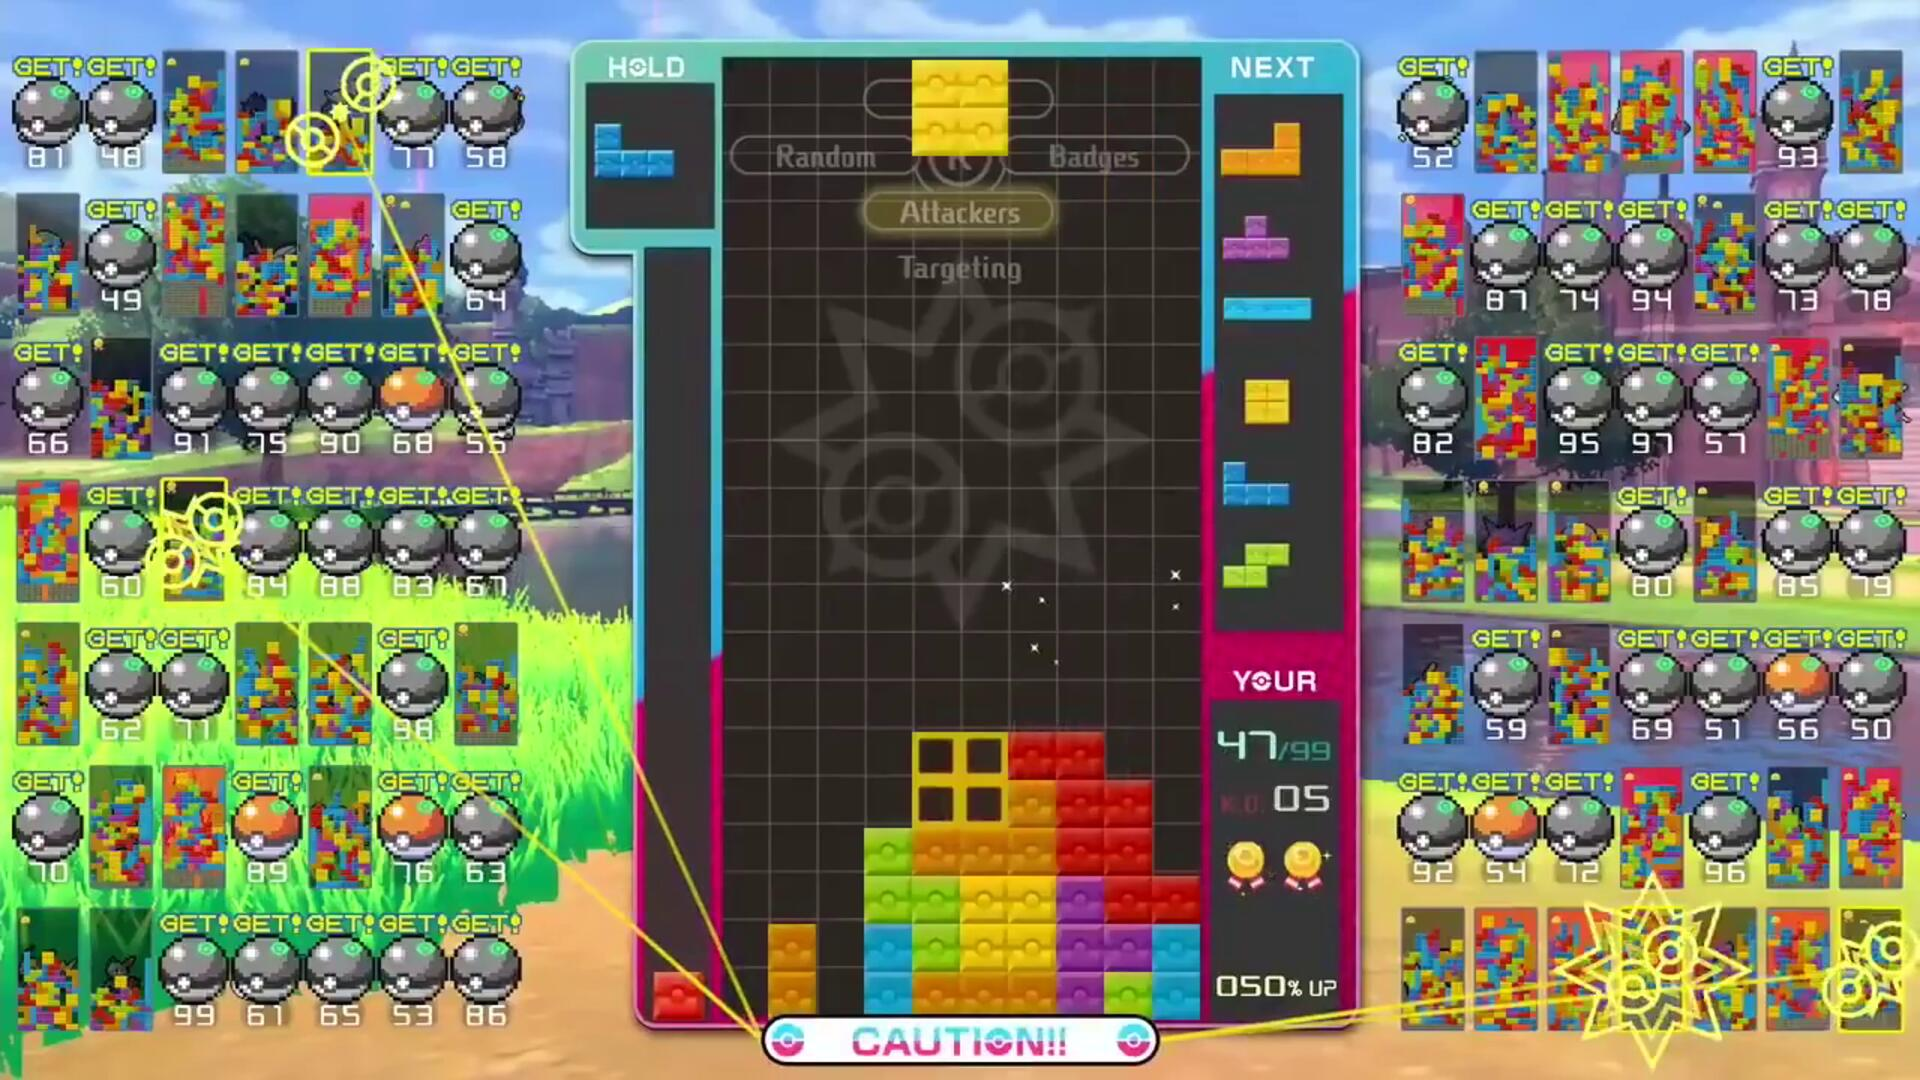 Gotta Catch All 98 Opponents in Tetris 99's Upcoming Pokemon Crossover Event